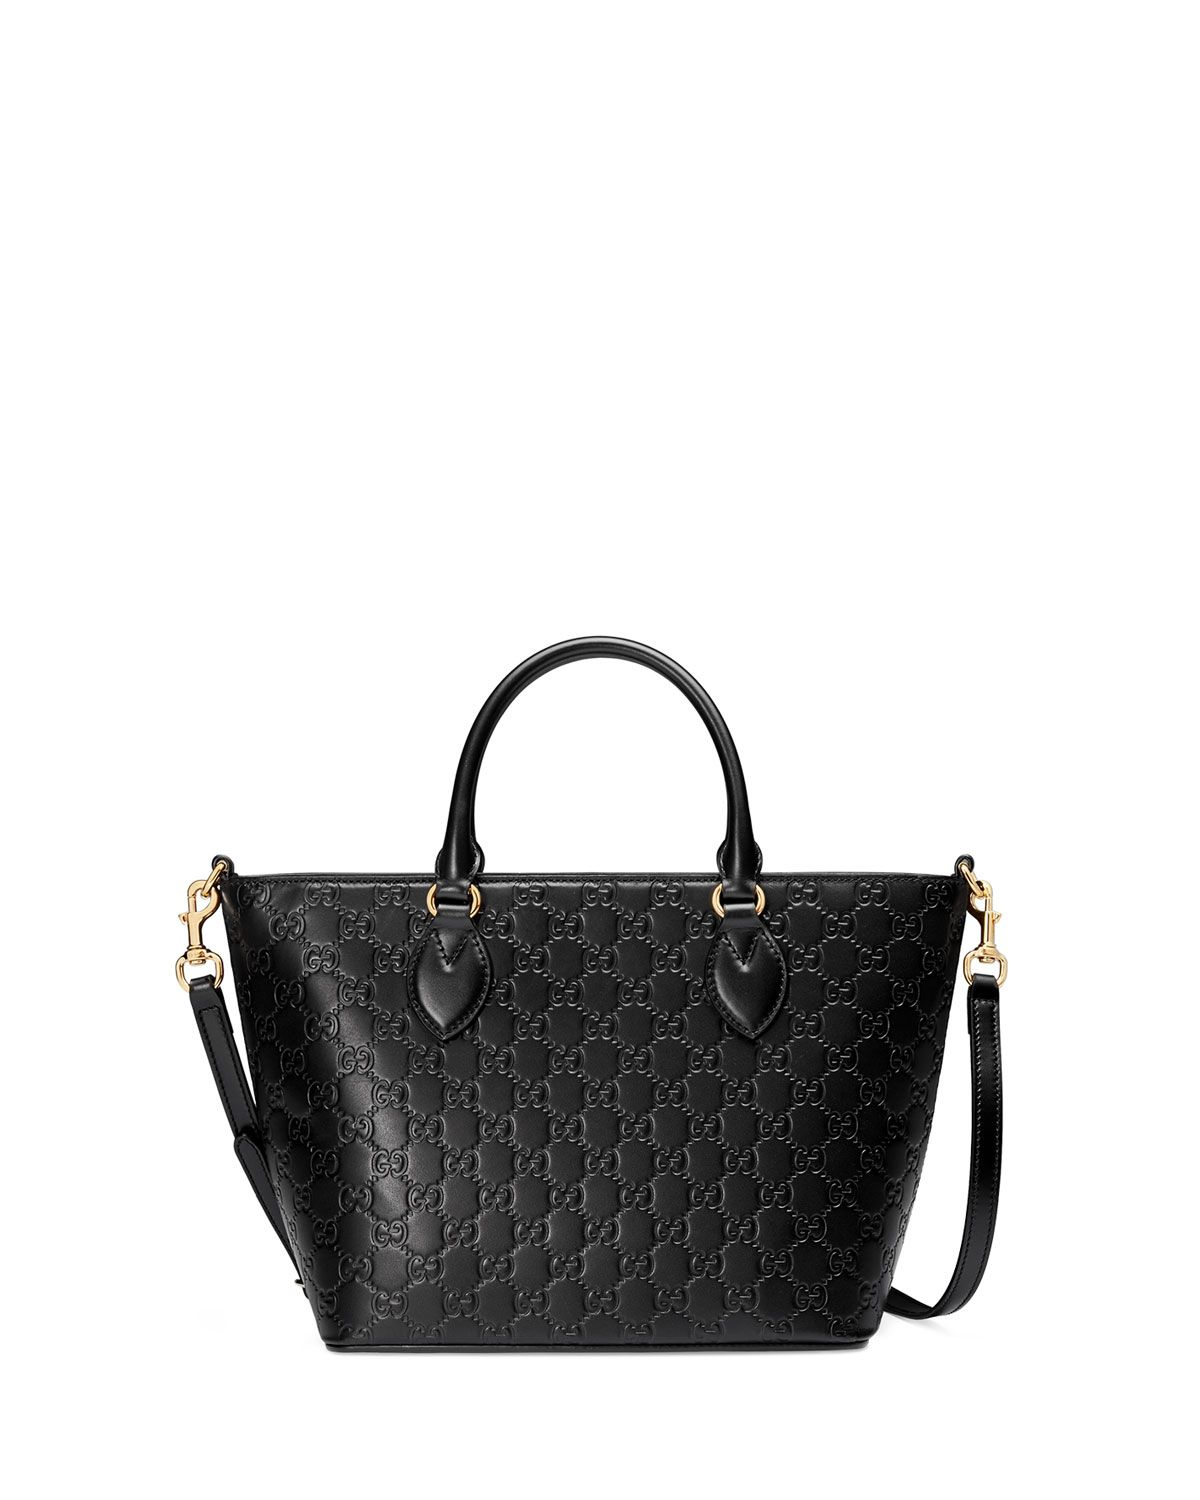 fe198a30fda Gucci Guccissima leather tote bag with golden hardware. Rolled top handles